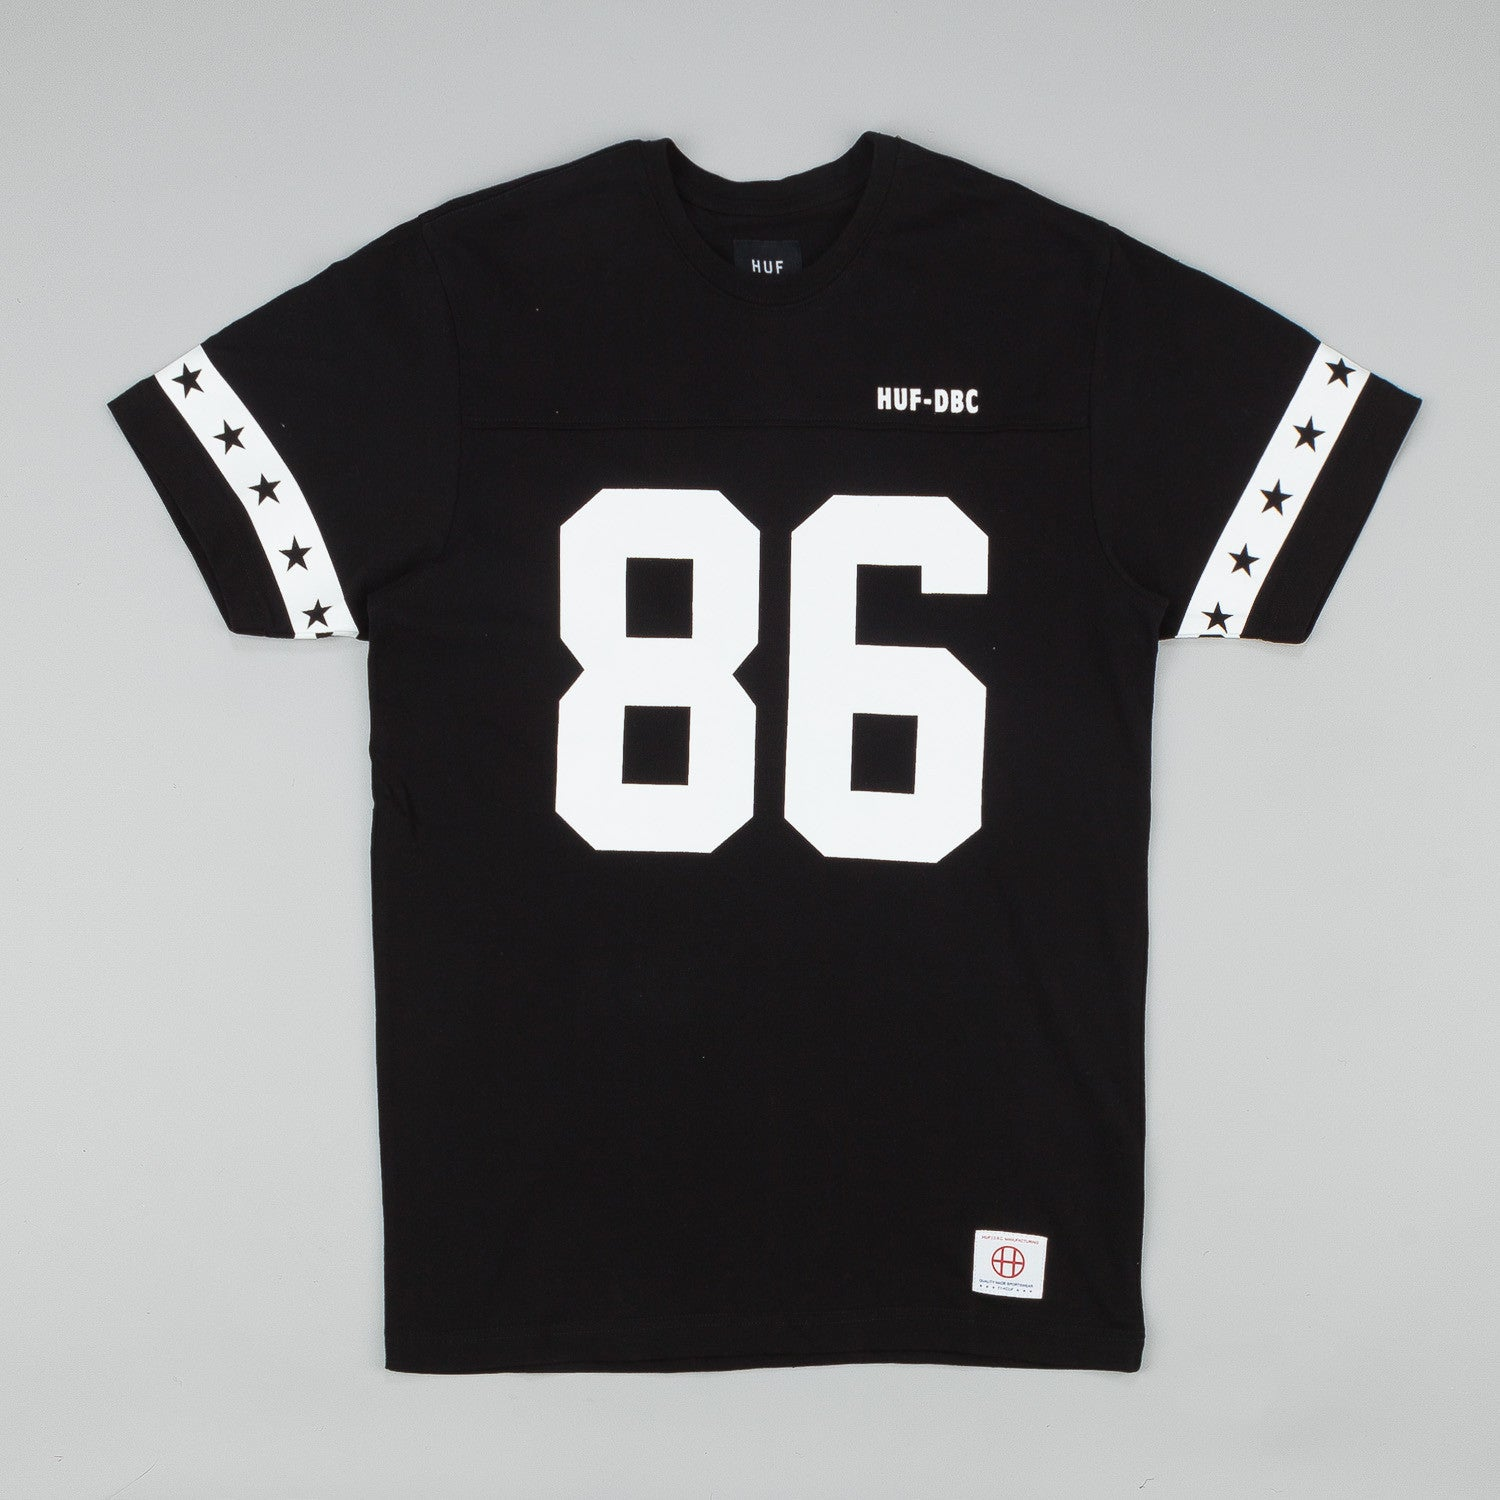 Huf 5 Star Football Jersey